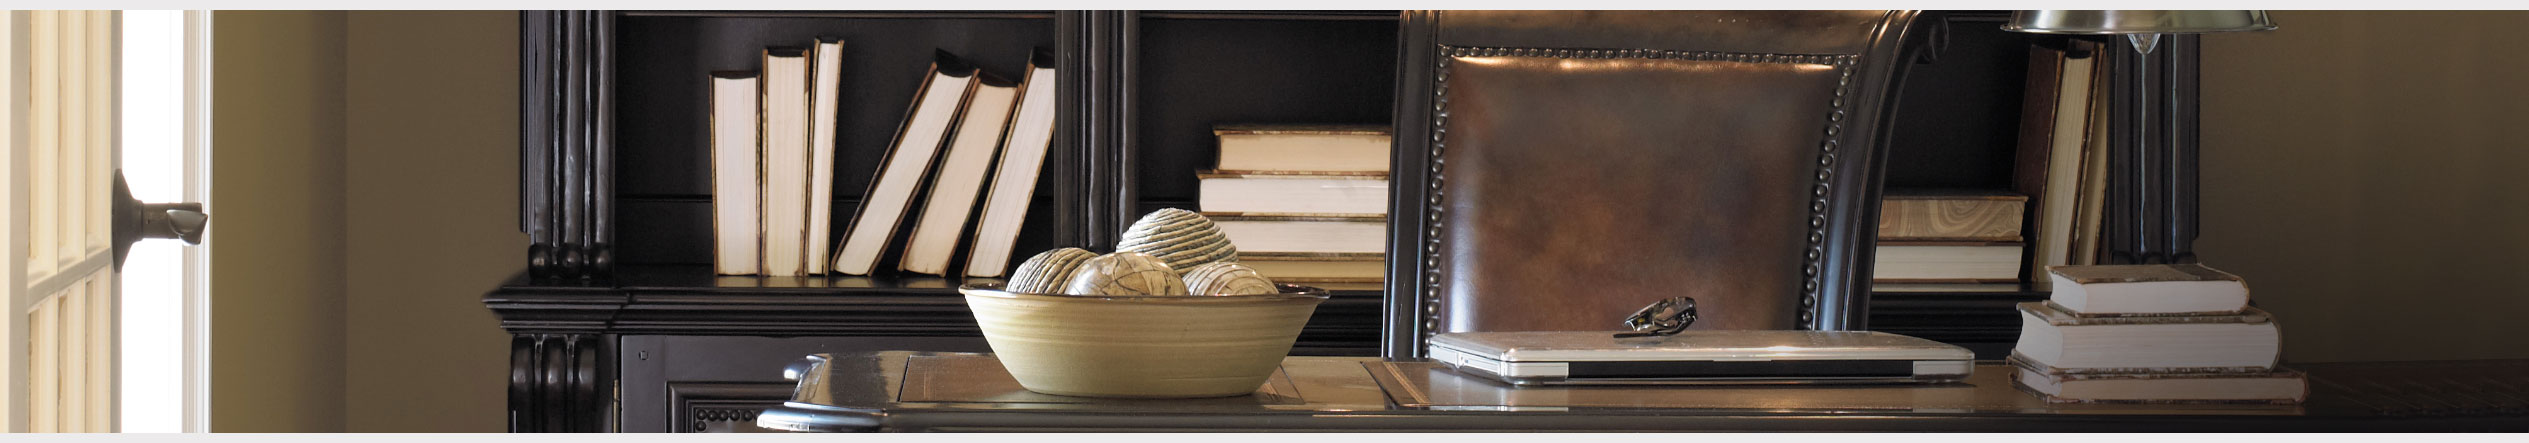 Shop Home Office Bookcases at Jordan's Furniture stores in CT, MA, ME, NH, ME,  and RI